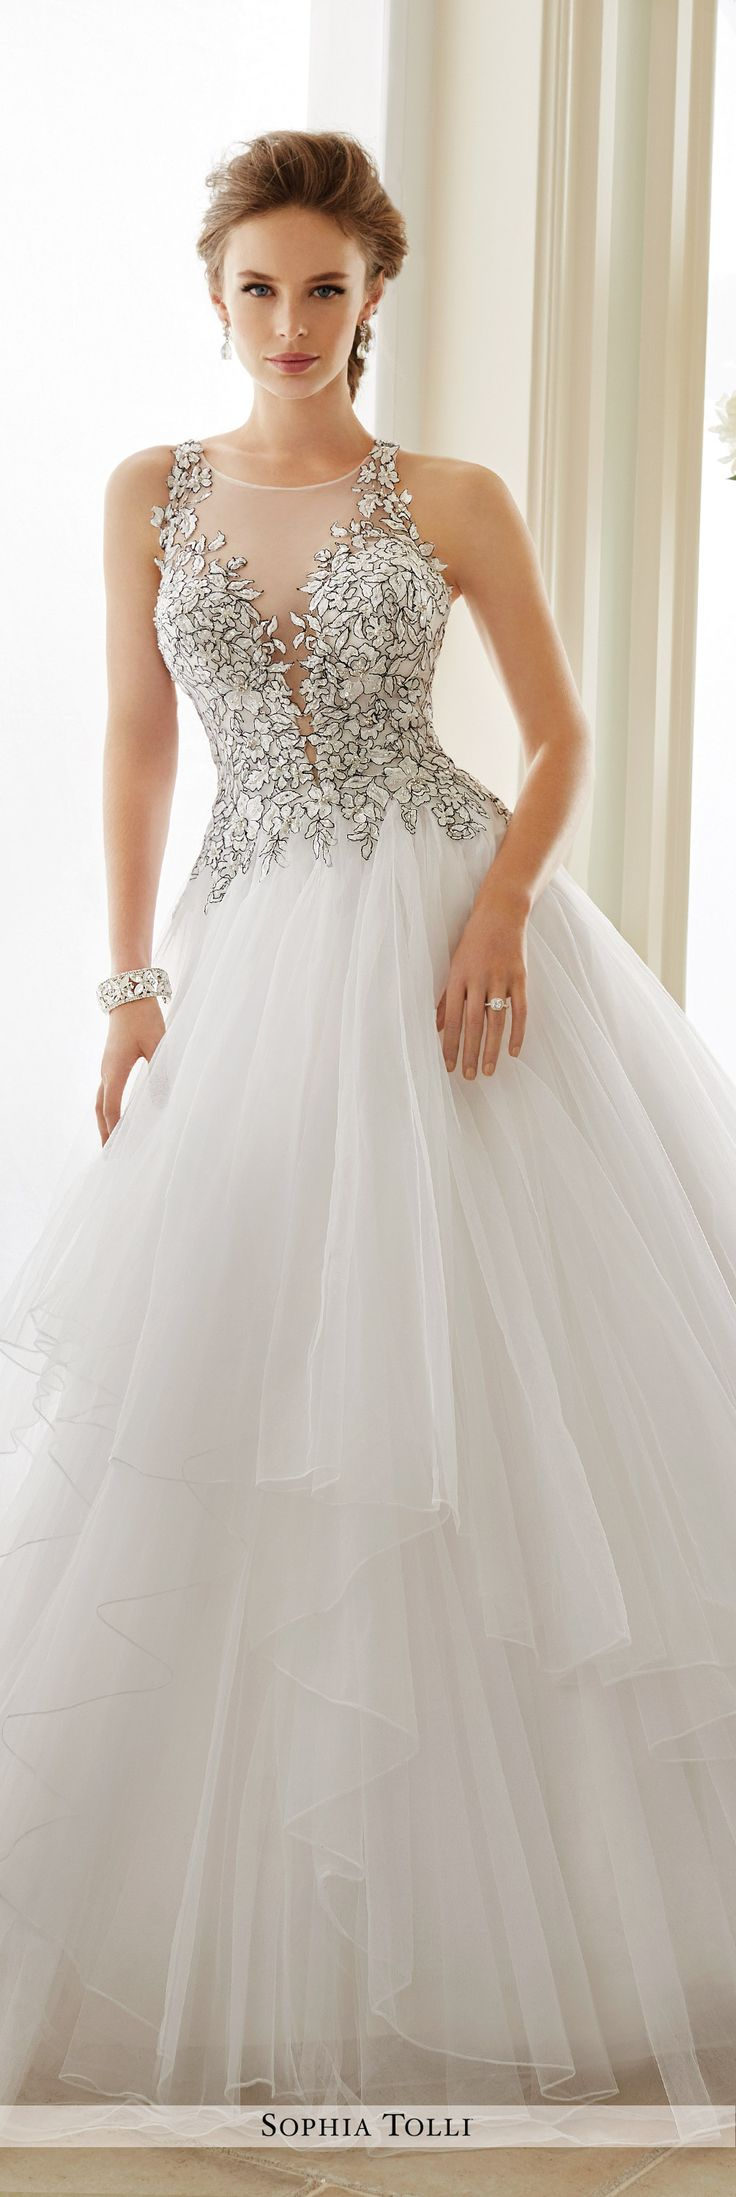 Sophia Tolli Fall 2016 Wedding Gown Collection - Style No. Y21655 Dolce Vita - lace sleeveless illusion tulle ball gown wedding dress